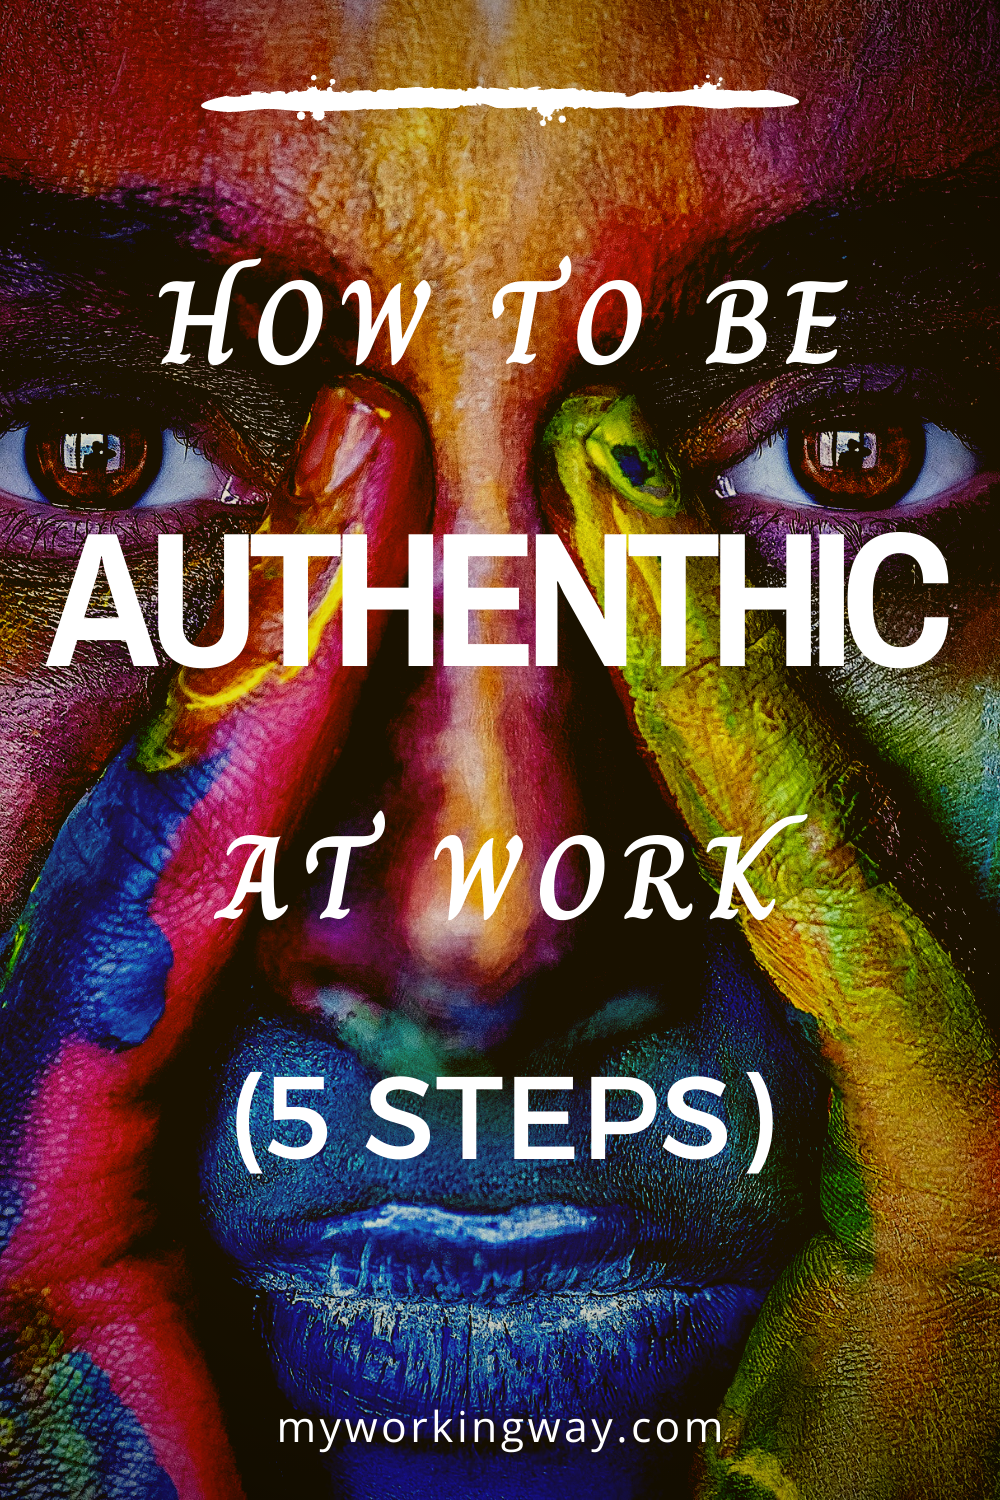 How To Be Authentic At Work